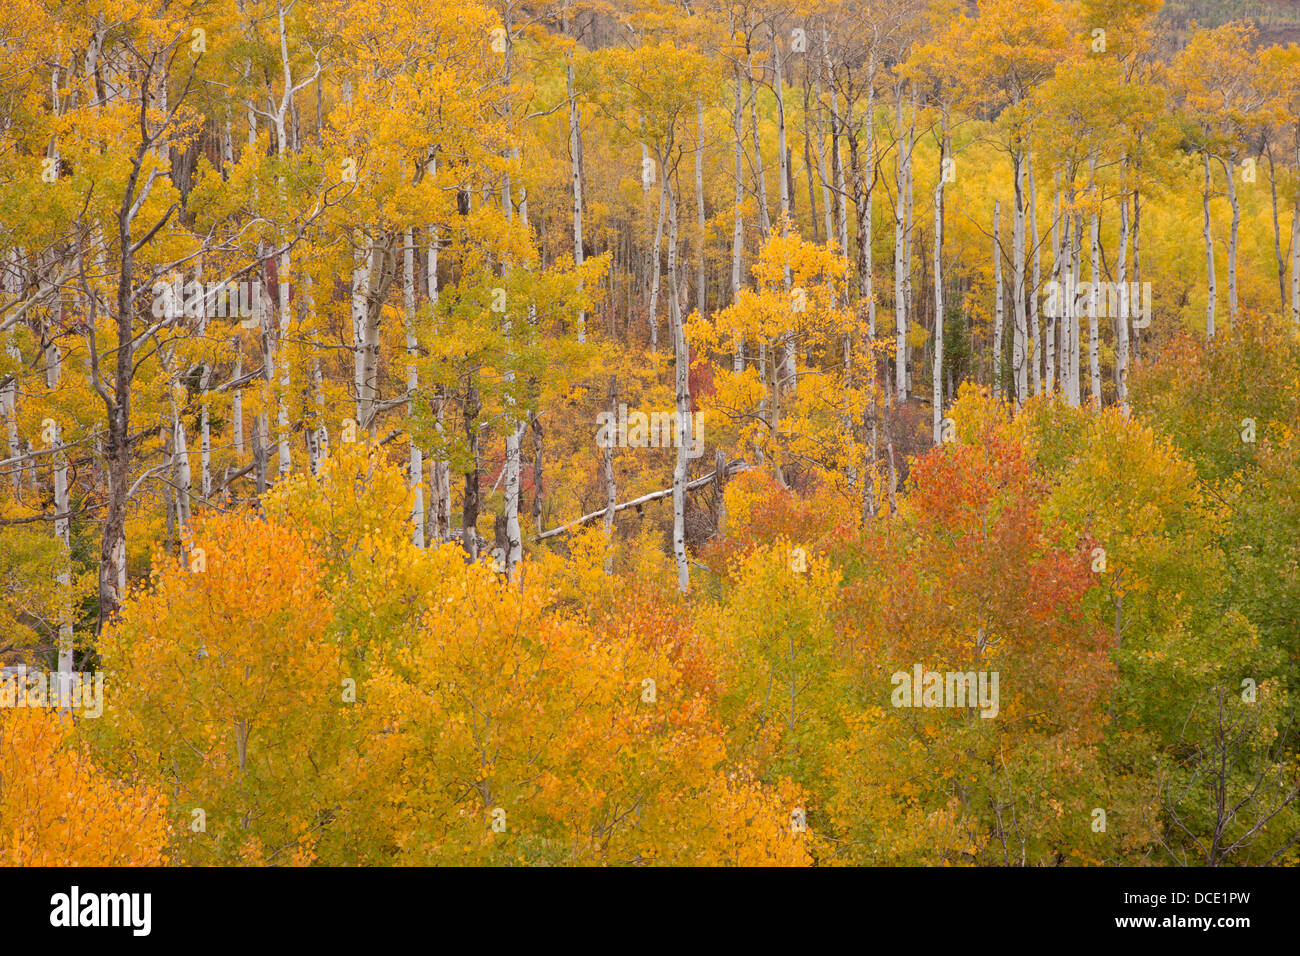 USA, Colorado, White River National Forest. Aspen grove in peak autumn foliage. - Stock Image